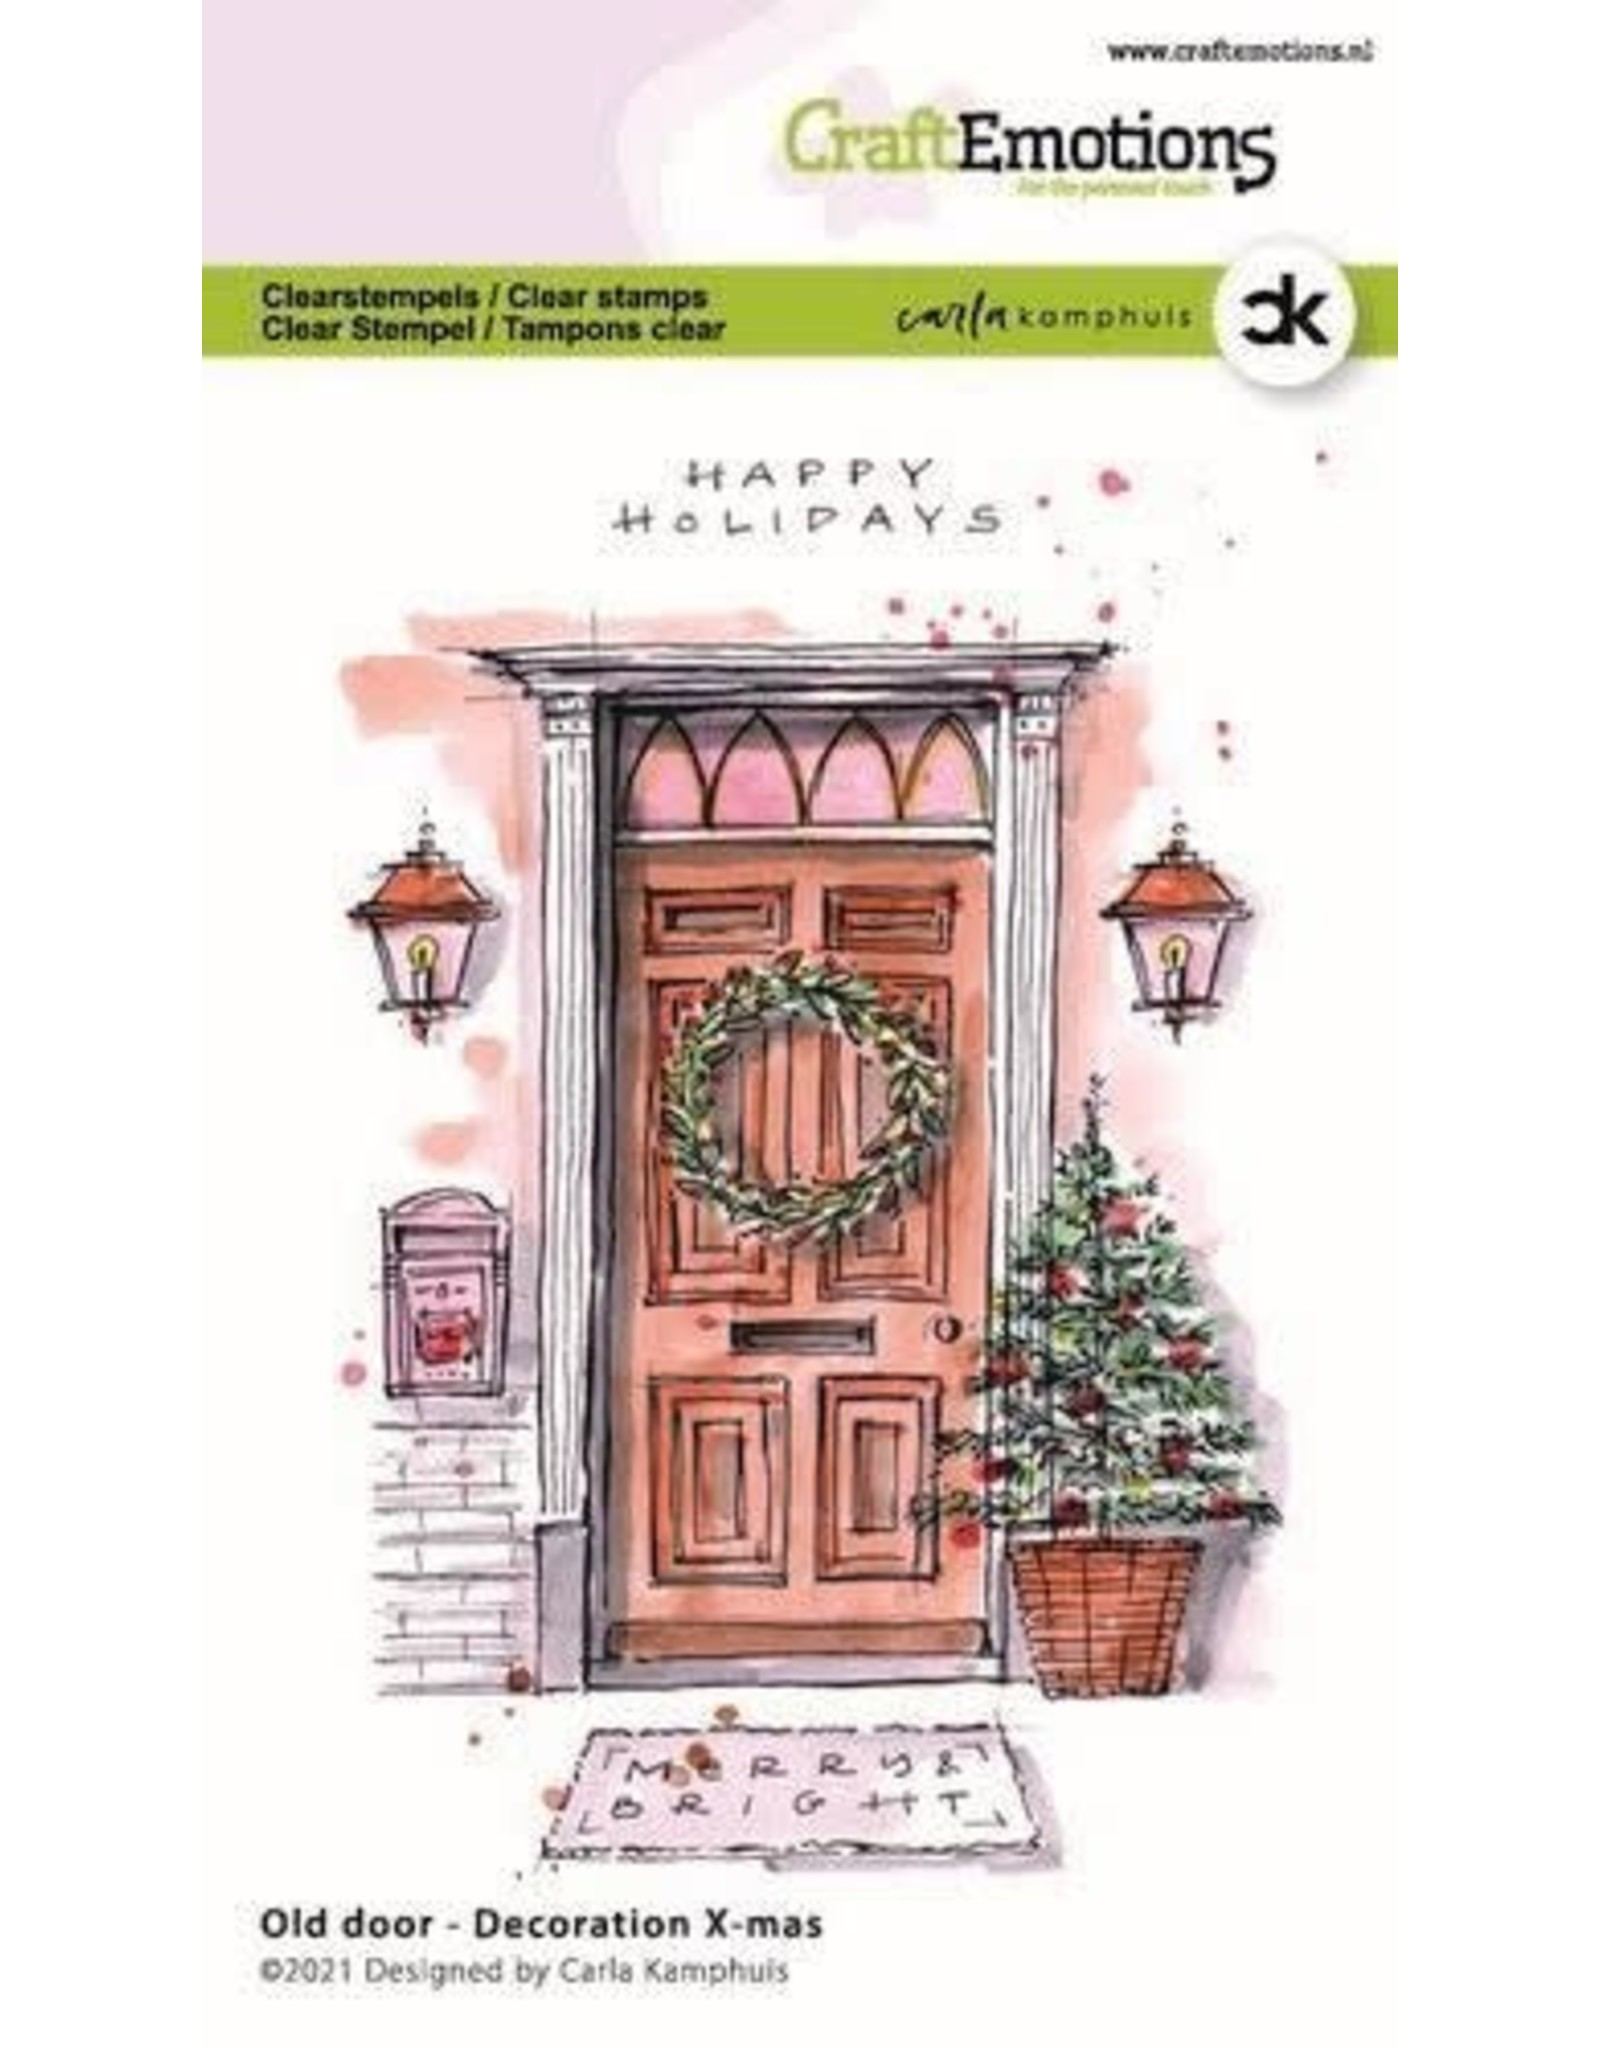 Craft Emotions CraftEmotions clearstamps A6 - Oude deur - Decoration X-mas Carla Kamphuis